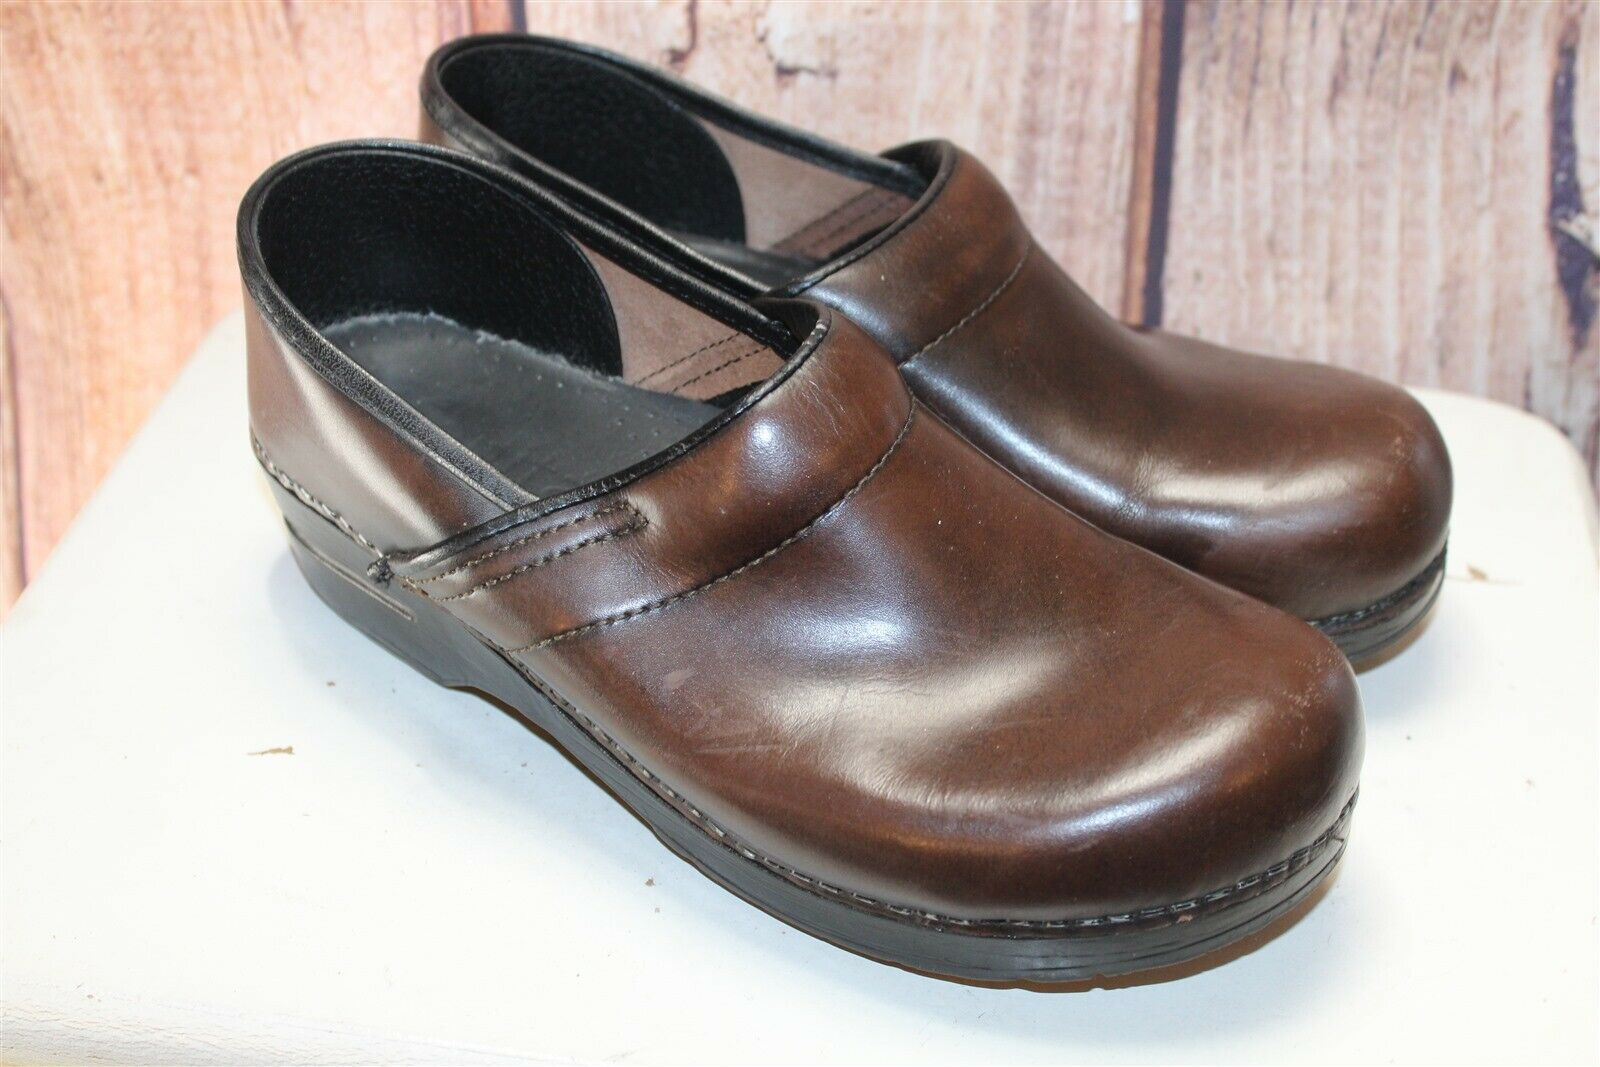 Sanita Brown Leather Stapled Clogs 41 11 Women's shoes